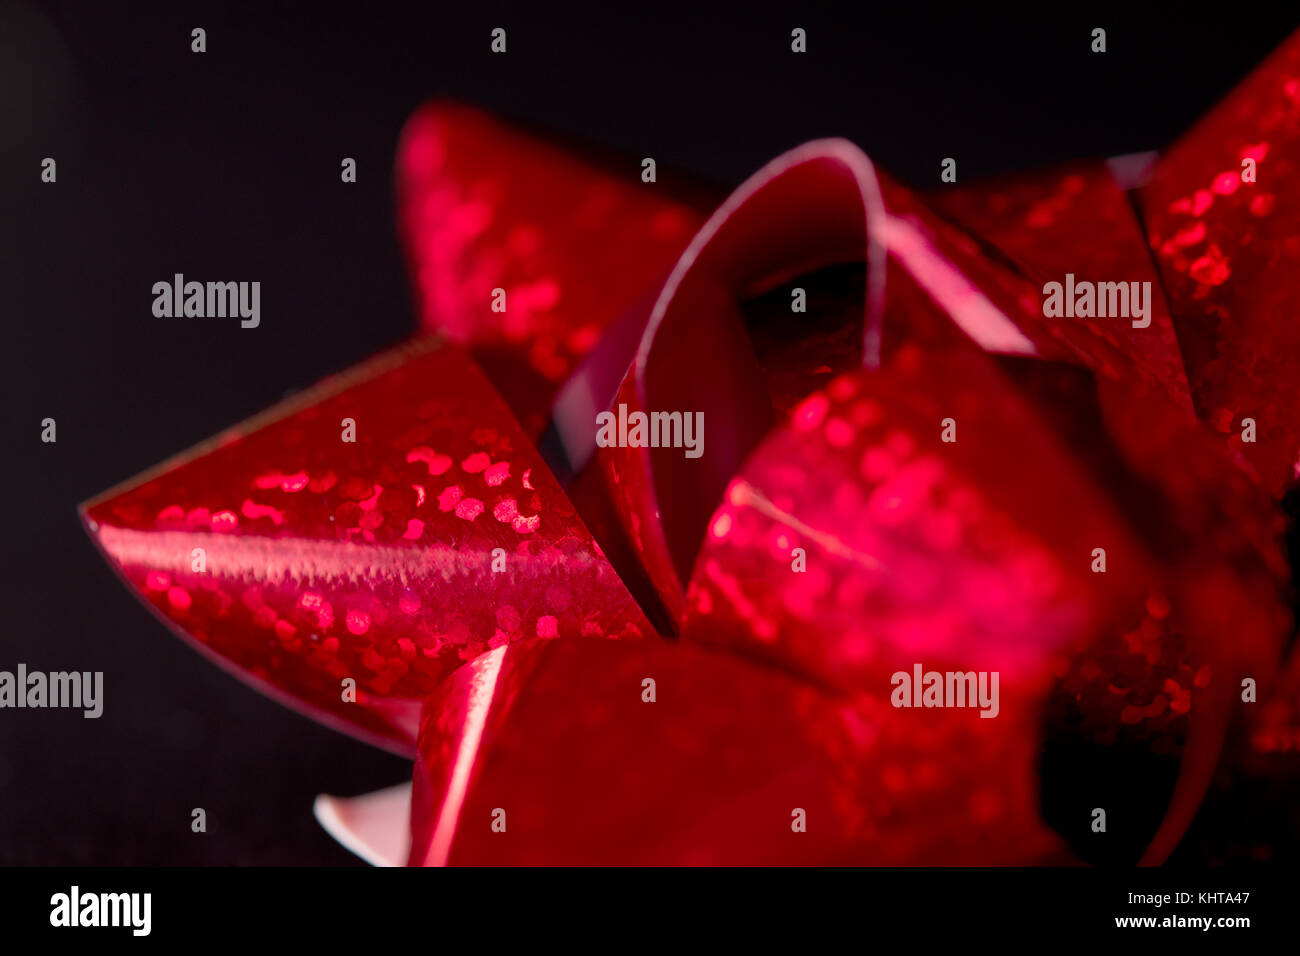 Glowing bows - Stock Image